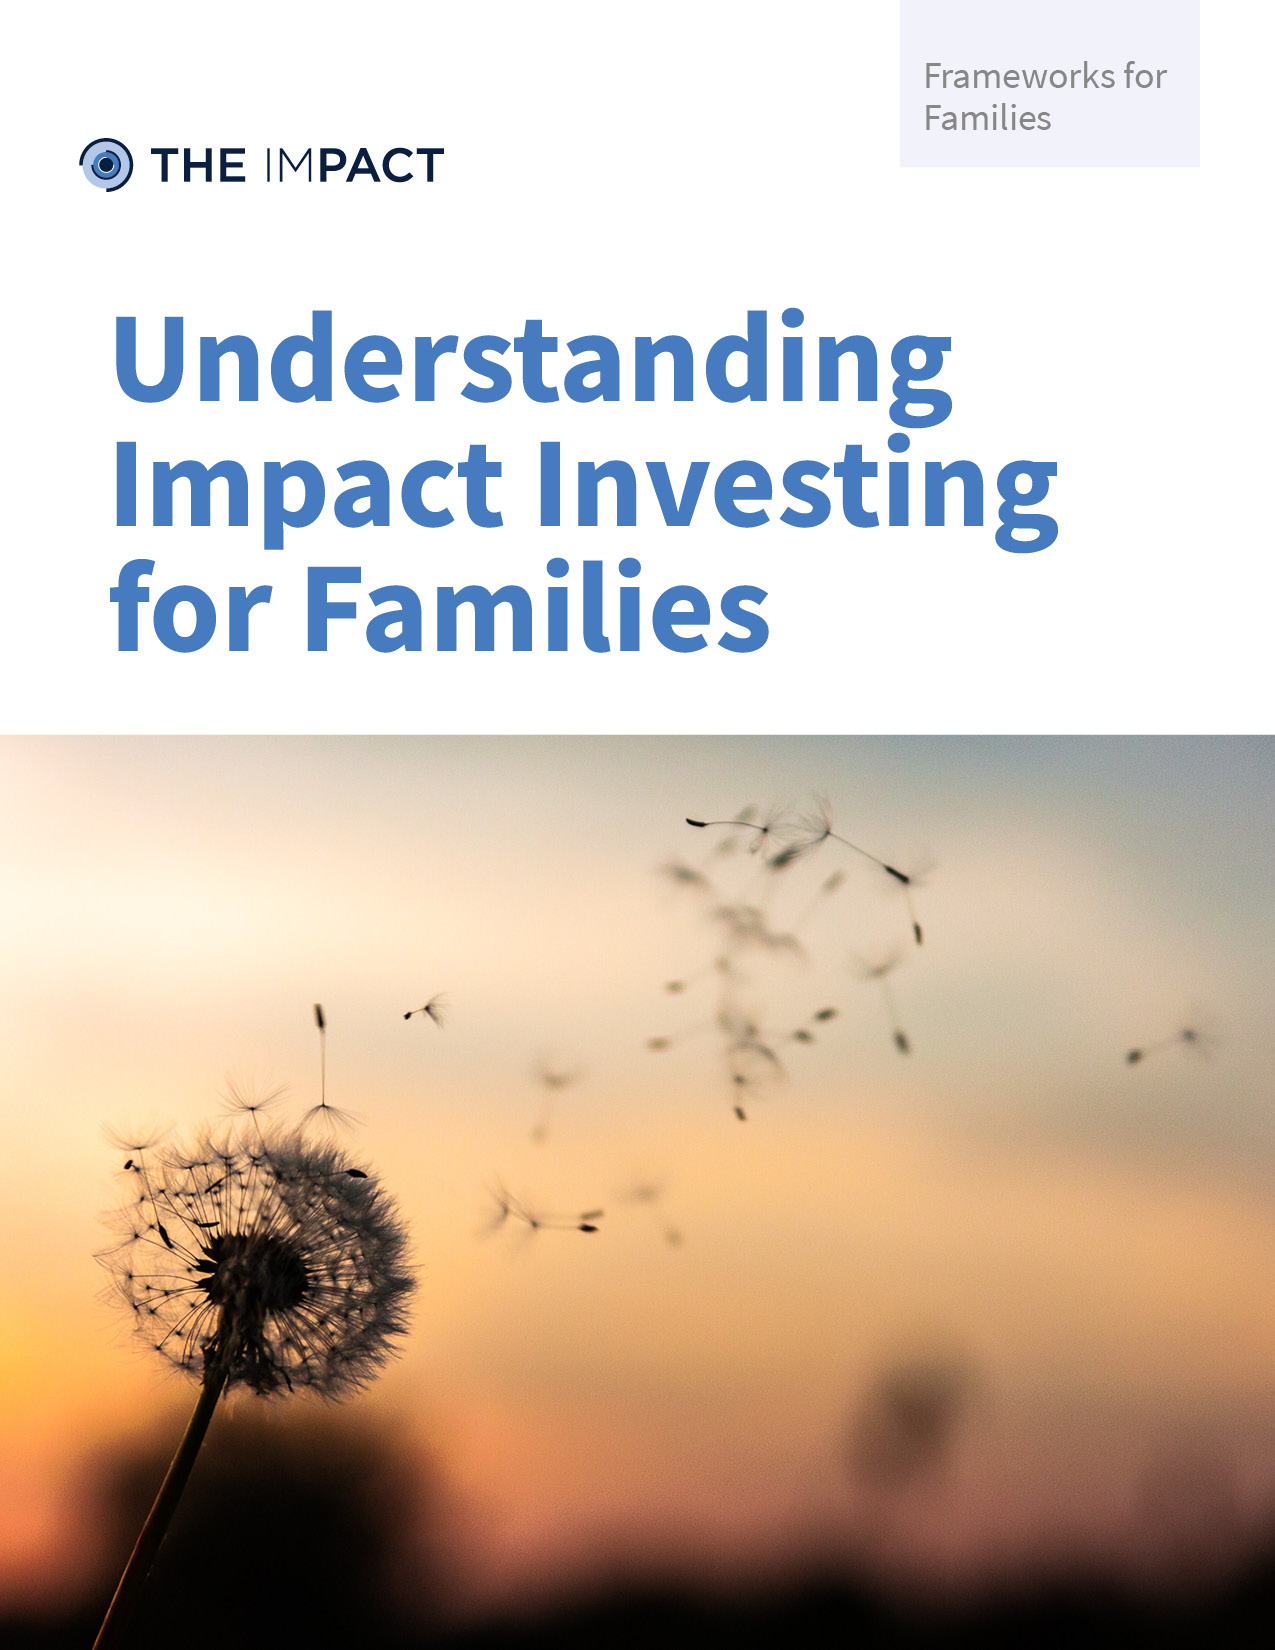 Understanding Impact Investing for Families. A framework for families by The ImPact.